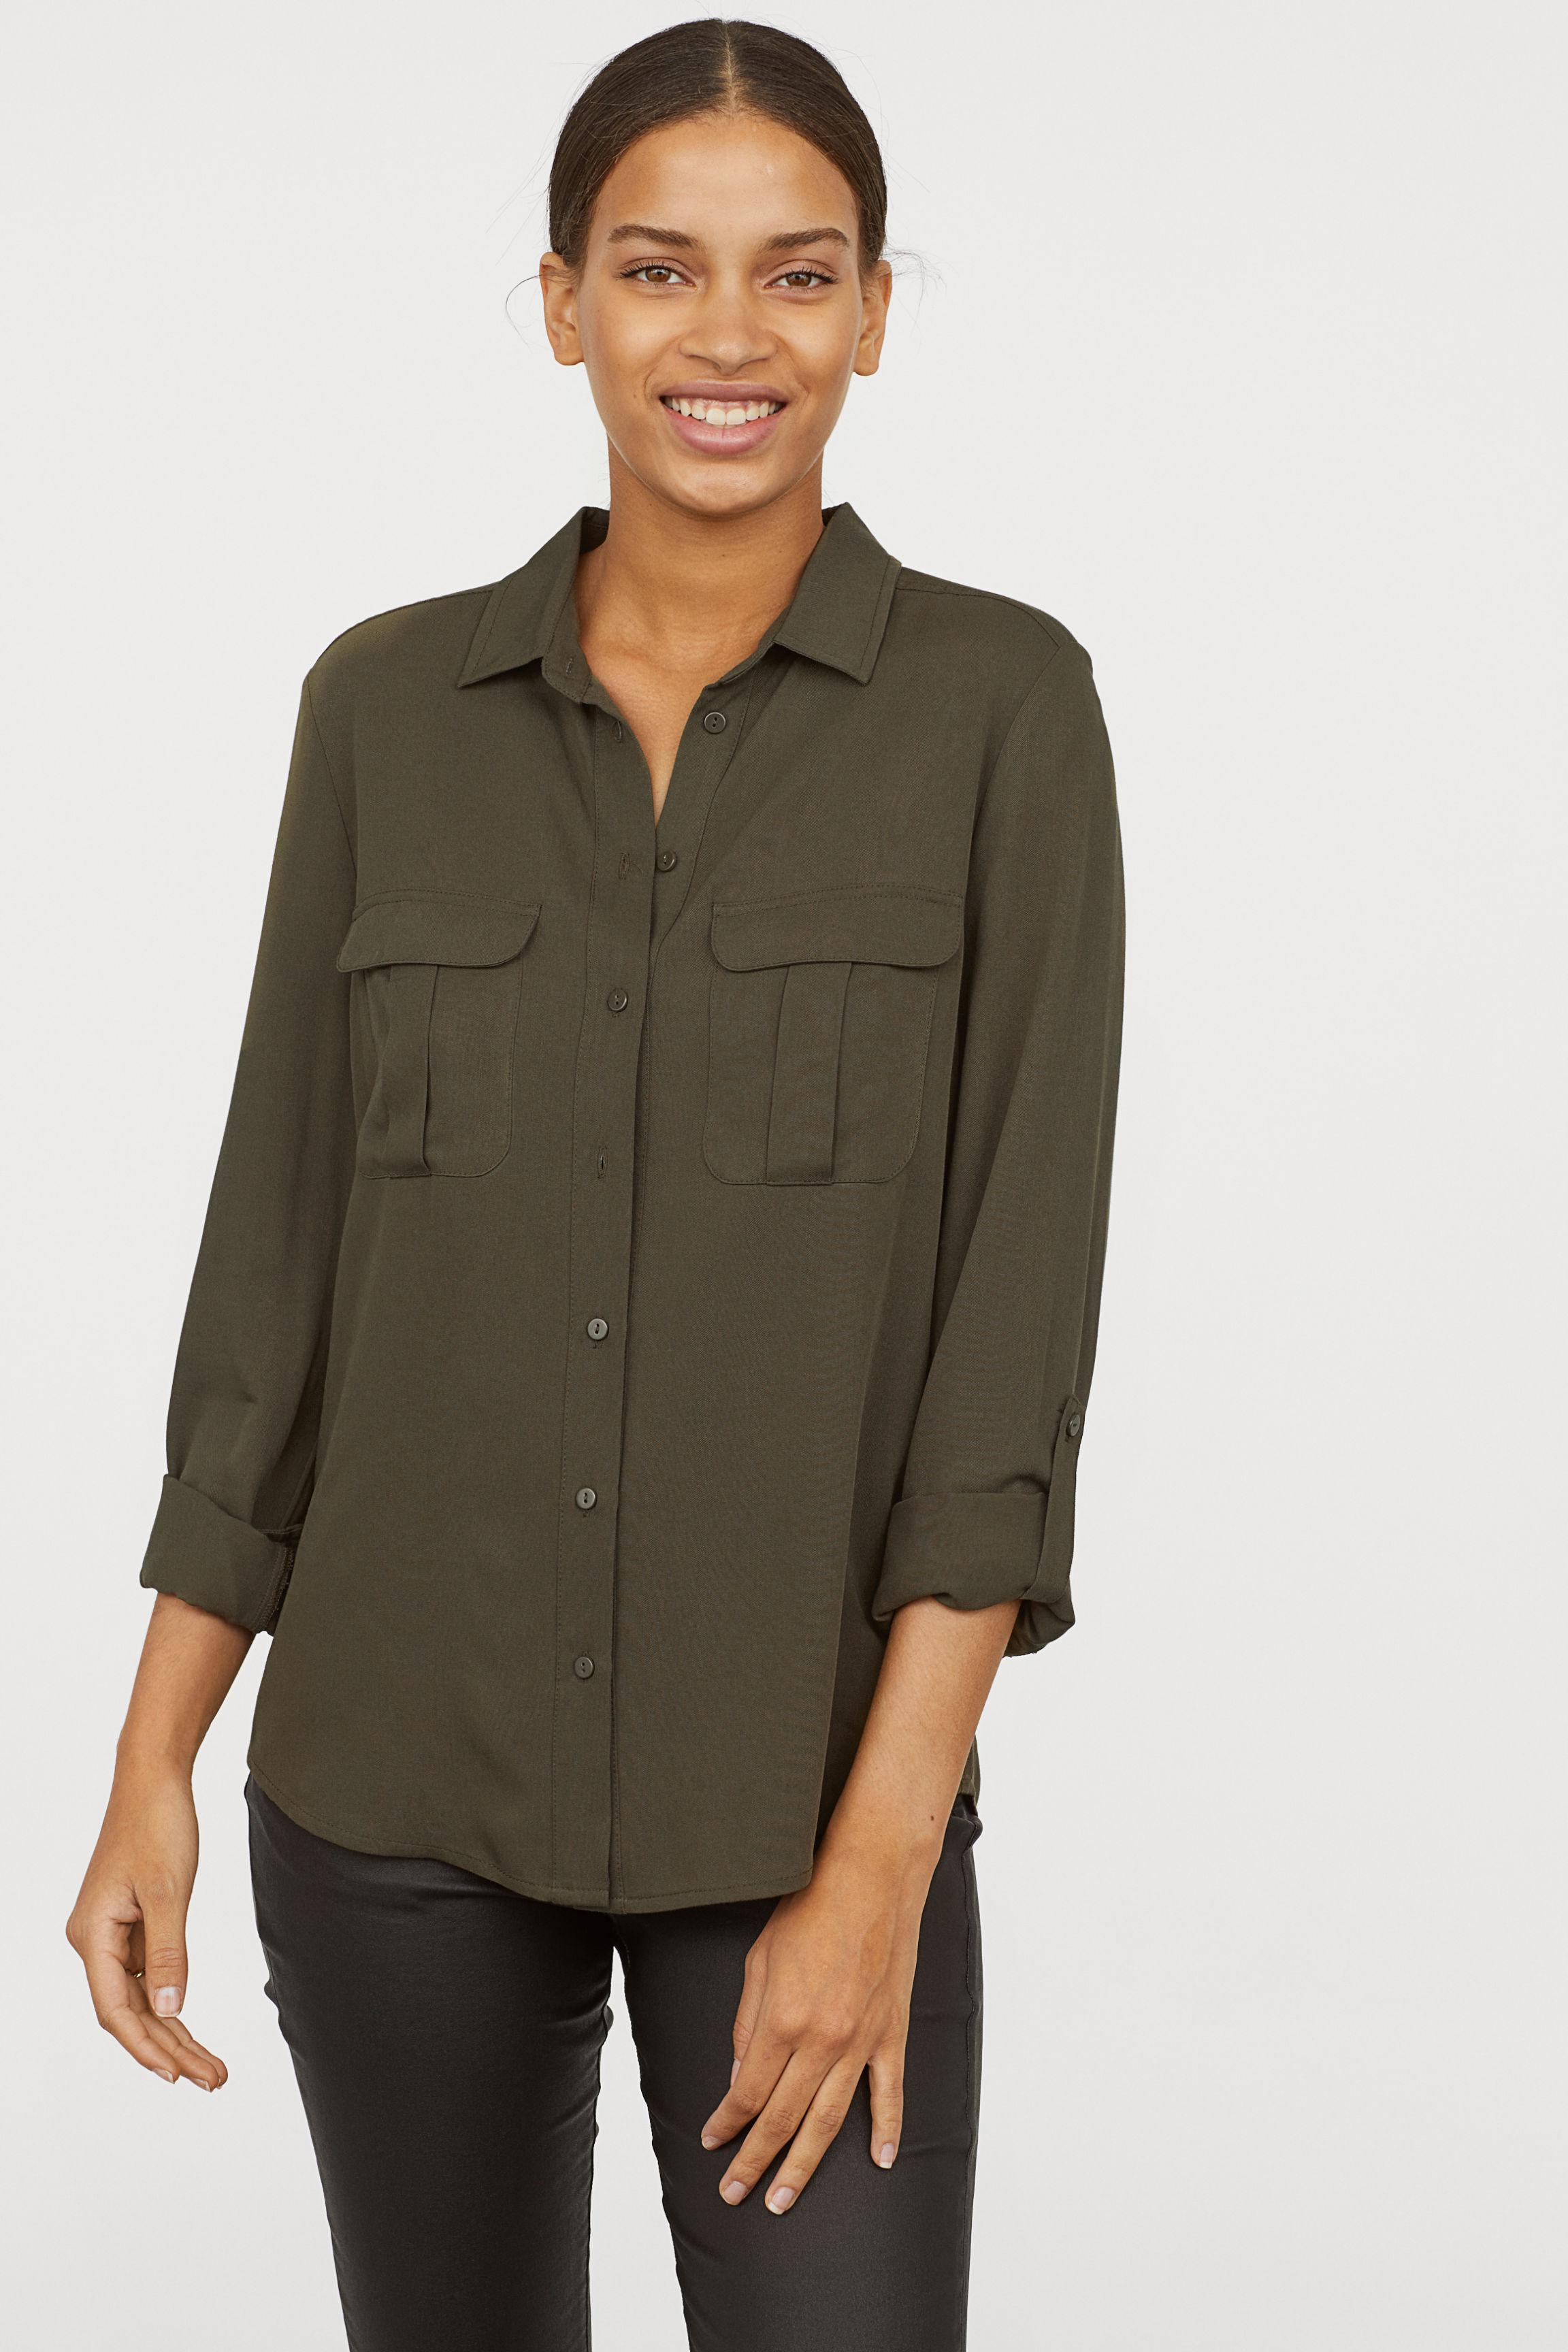 a44455bff70560 H M Shirt in Green - Lyst